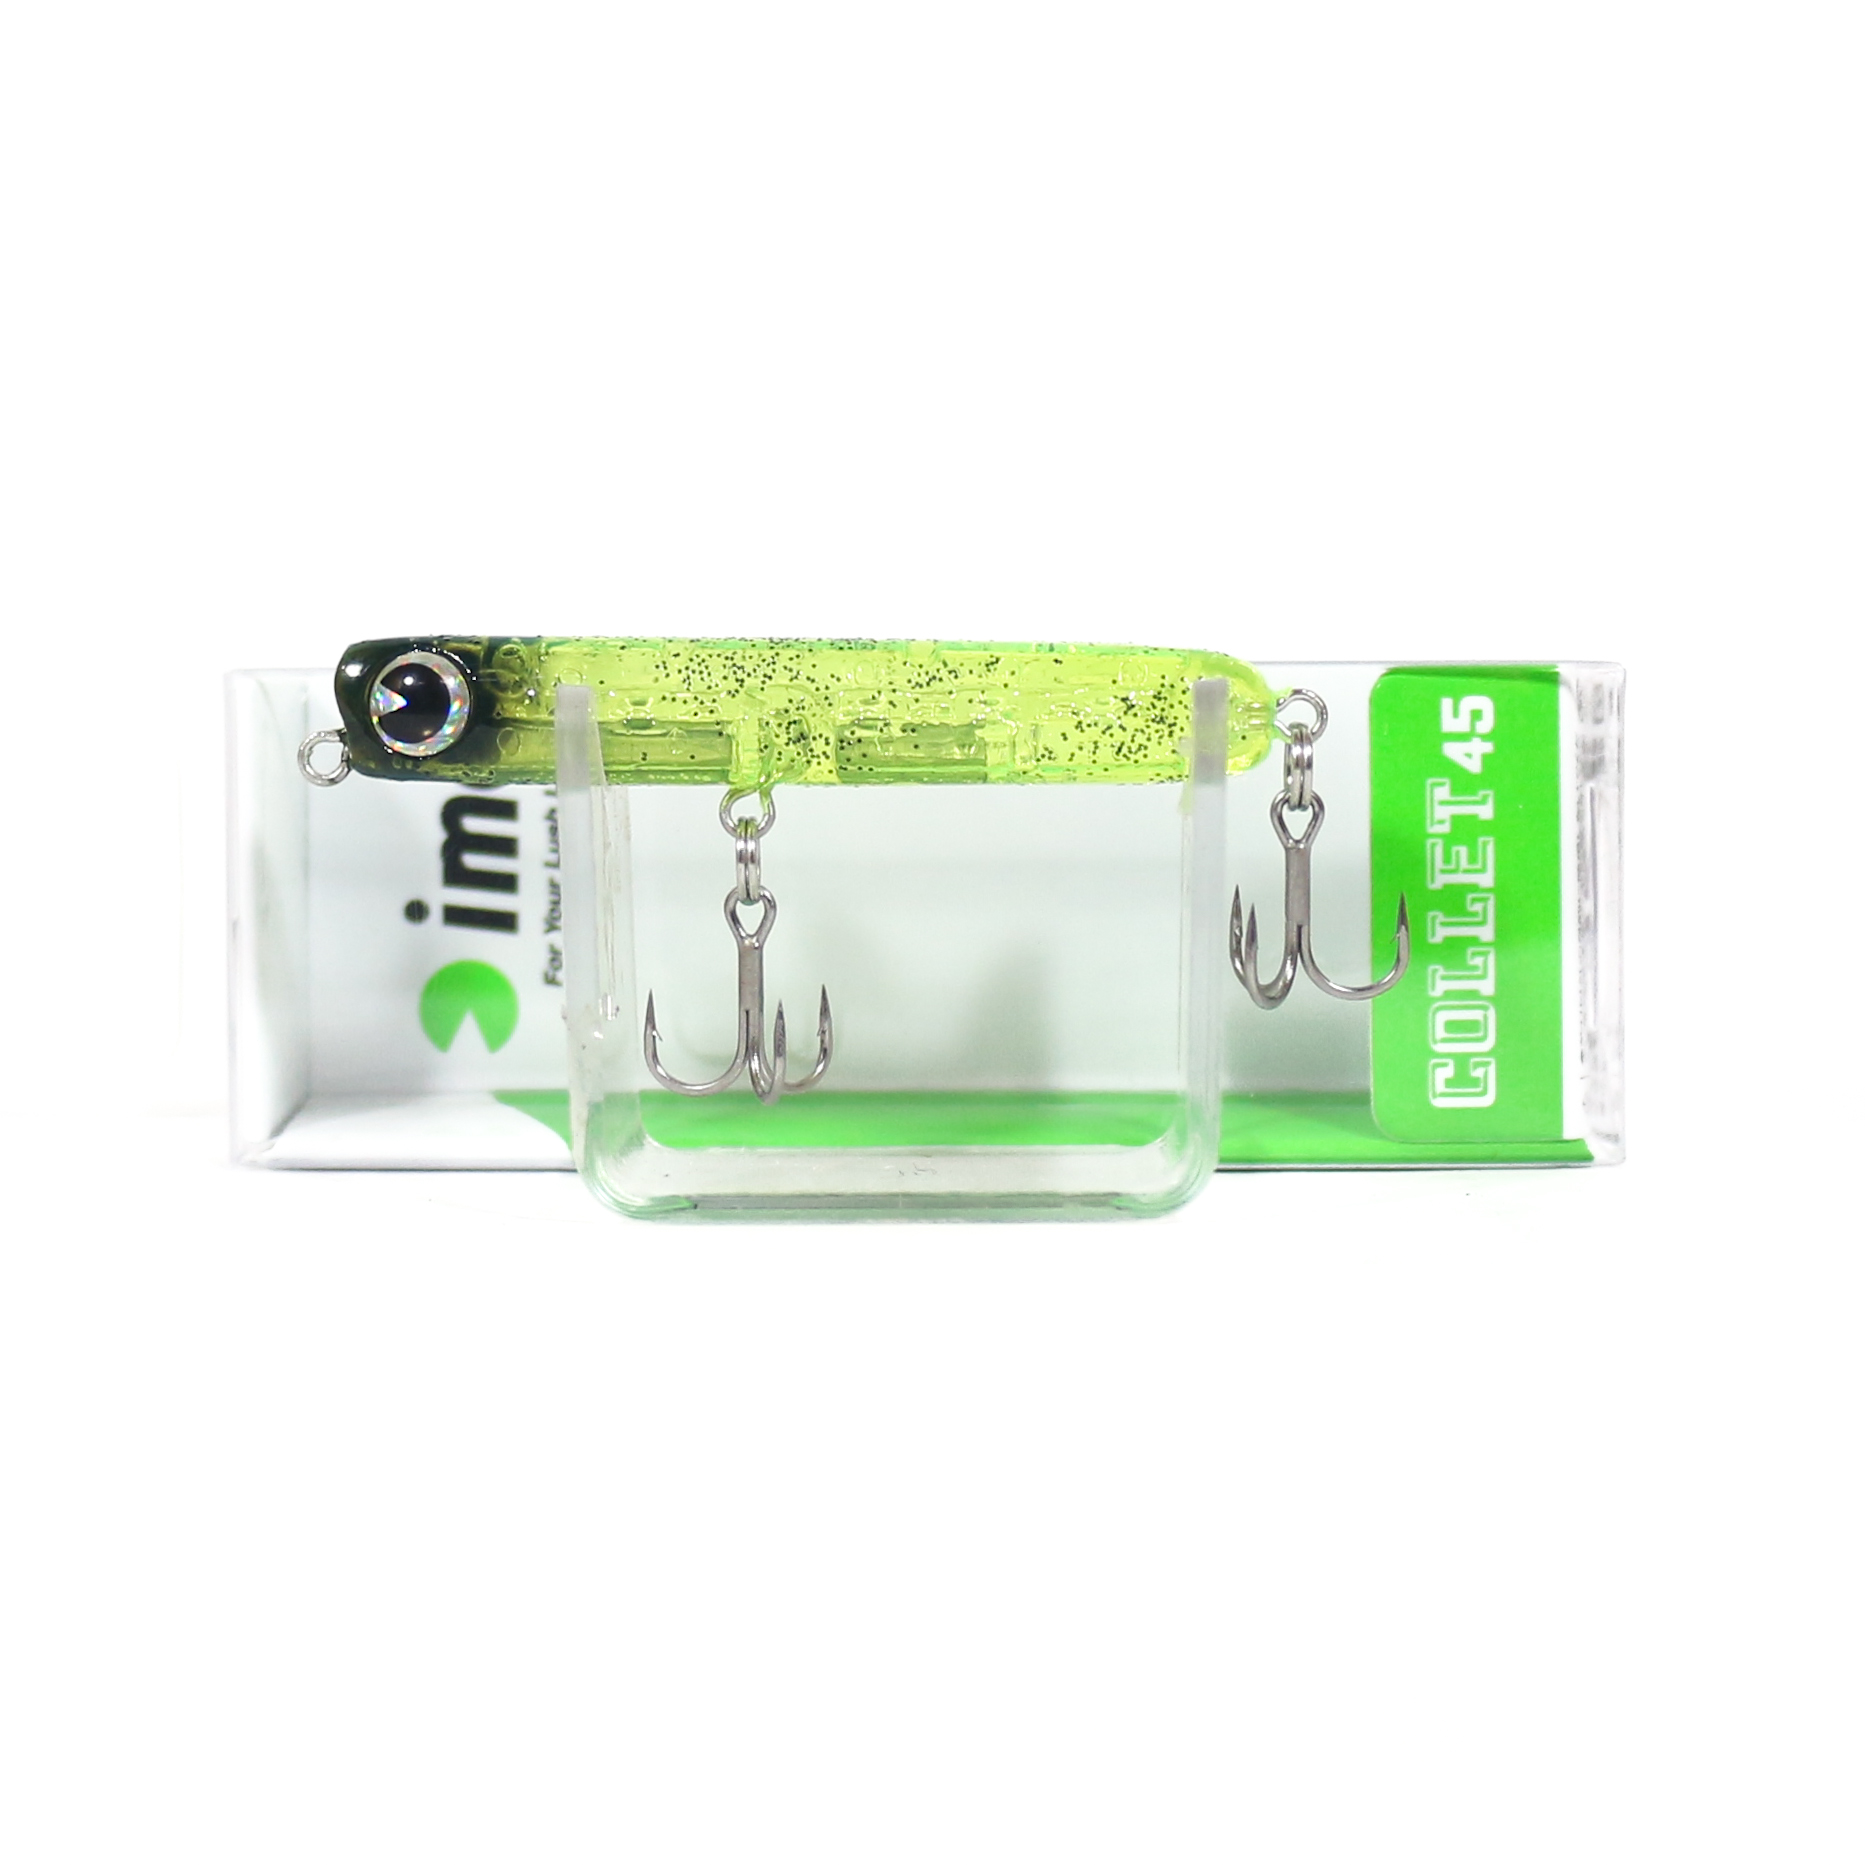 Ima Collet 45 Sinking Lure 005 (6221)